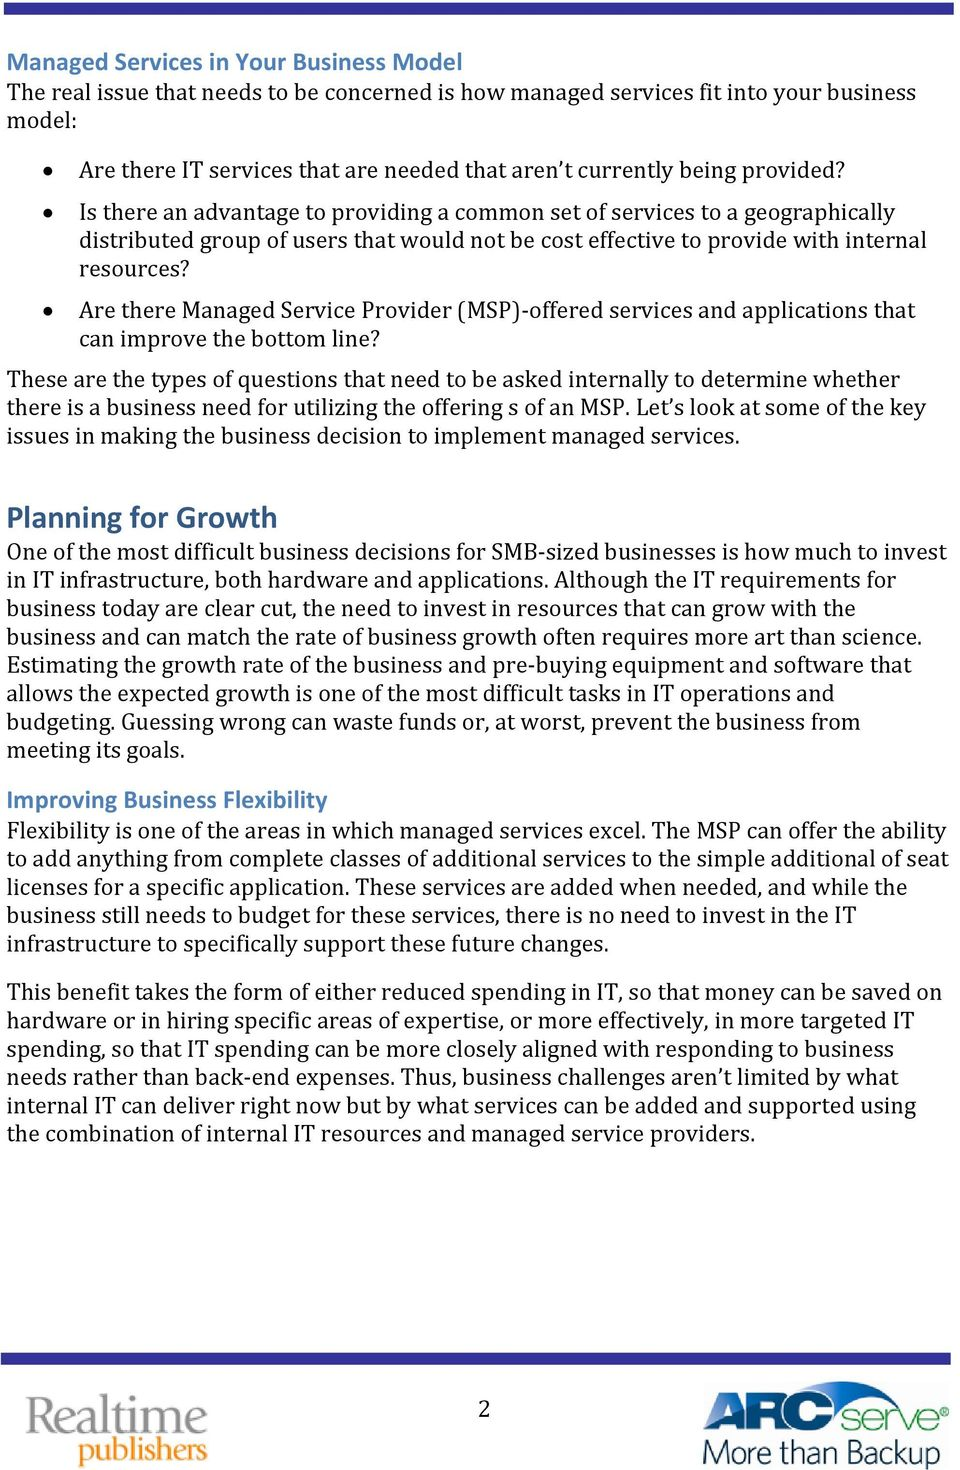 Are there Managed Service Provider (MSP) offered services and applications that can improve the bottom line?